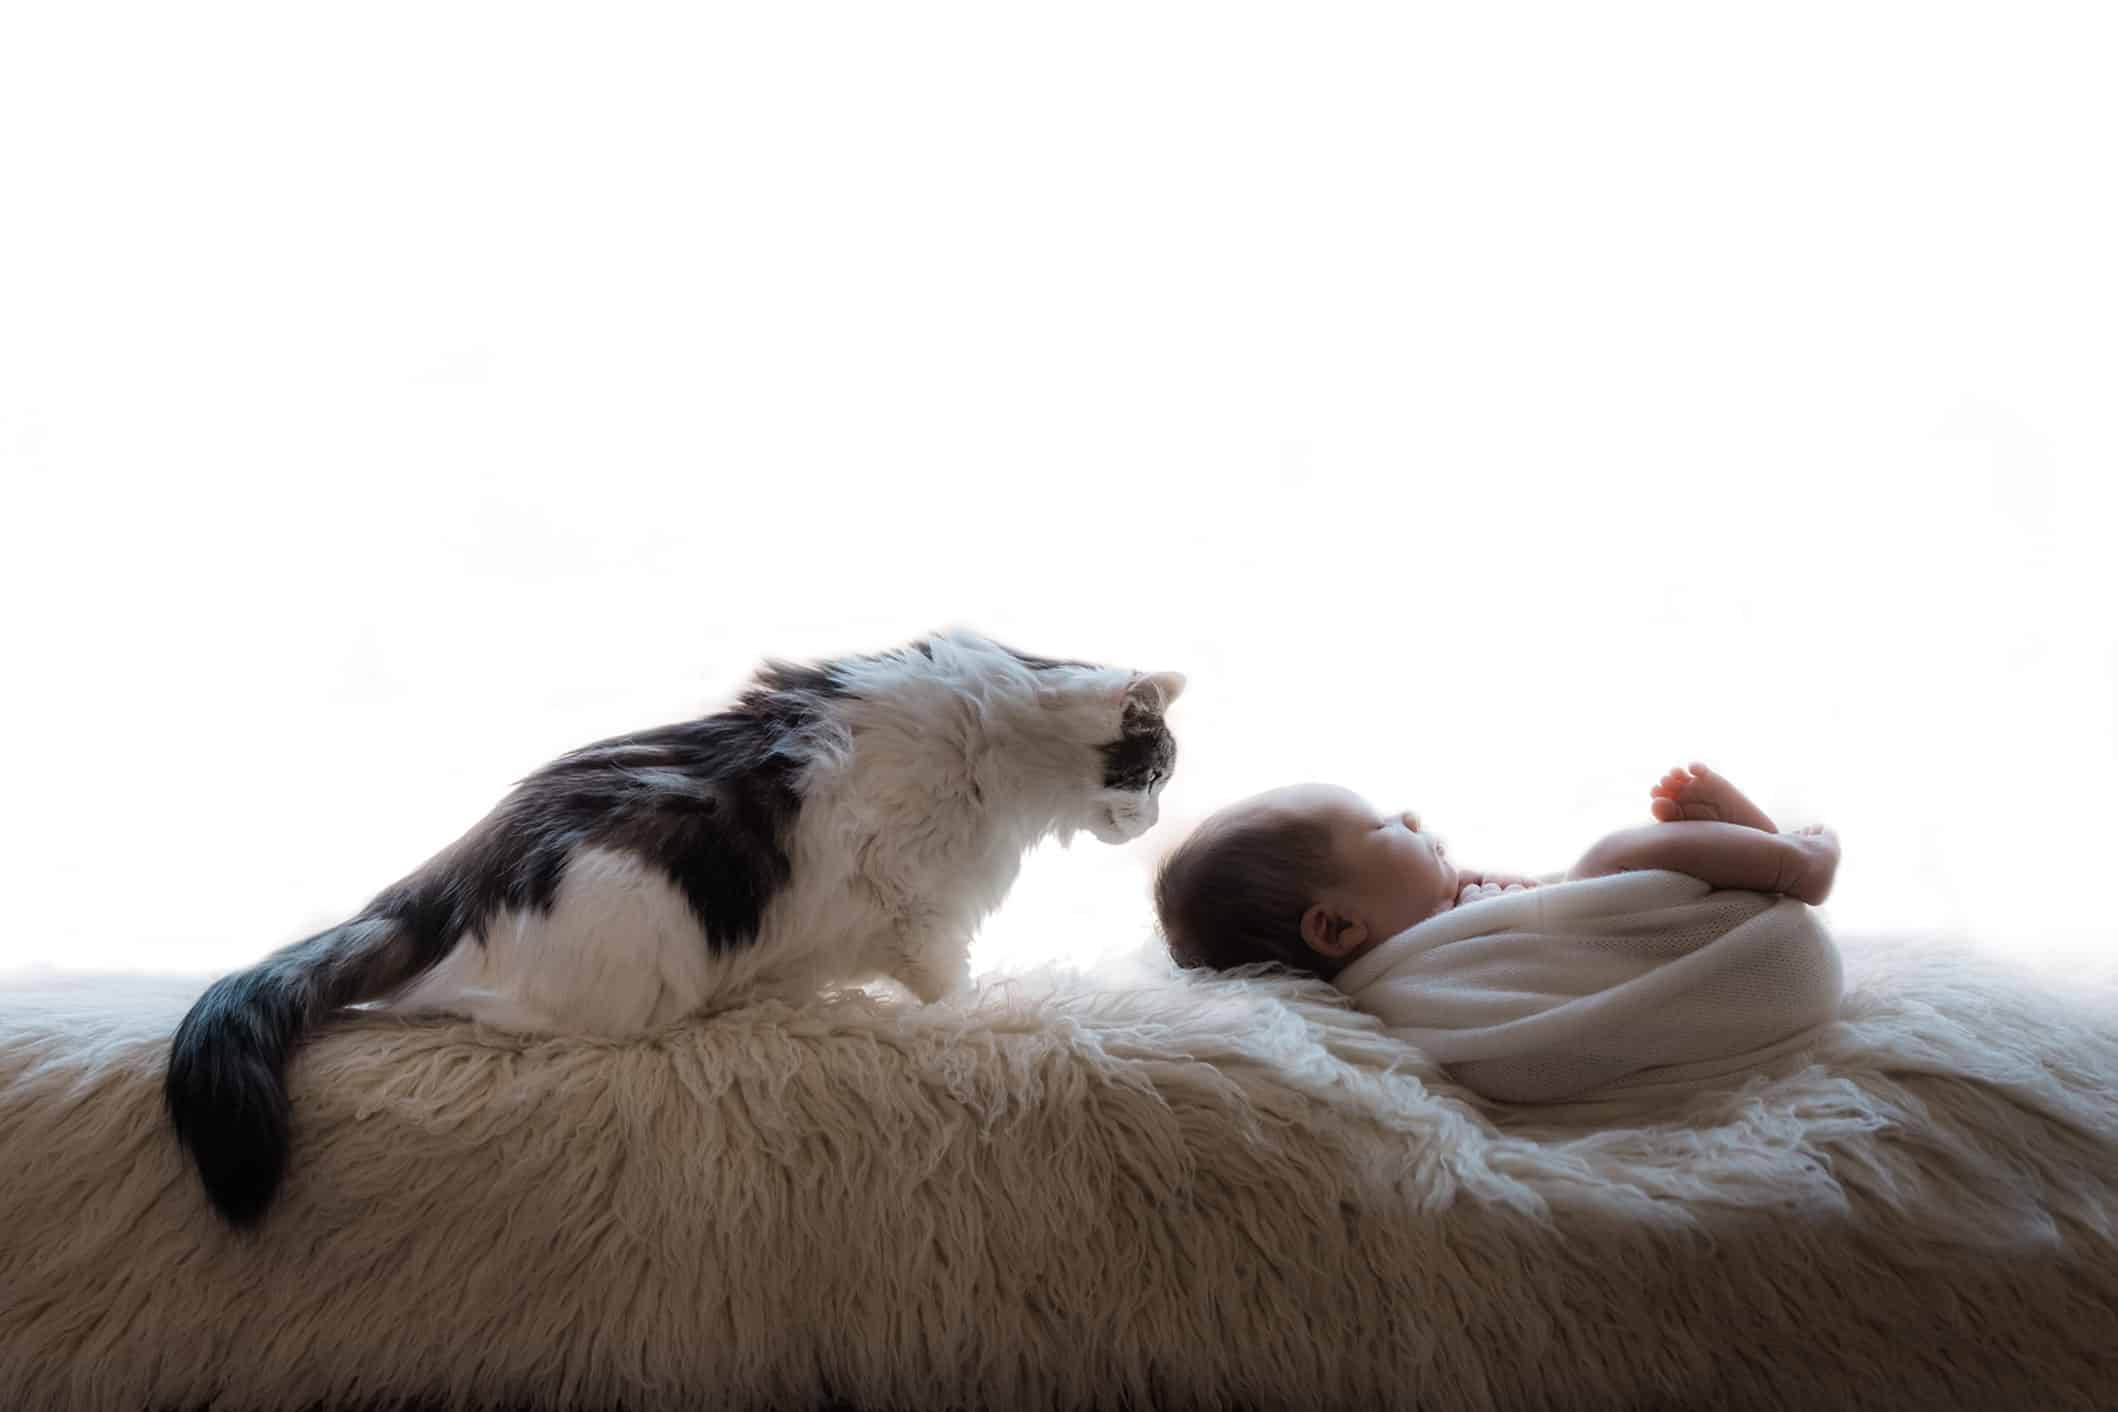 newborn photo with cat looking down on baby.